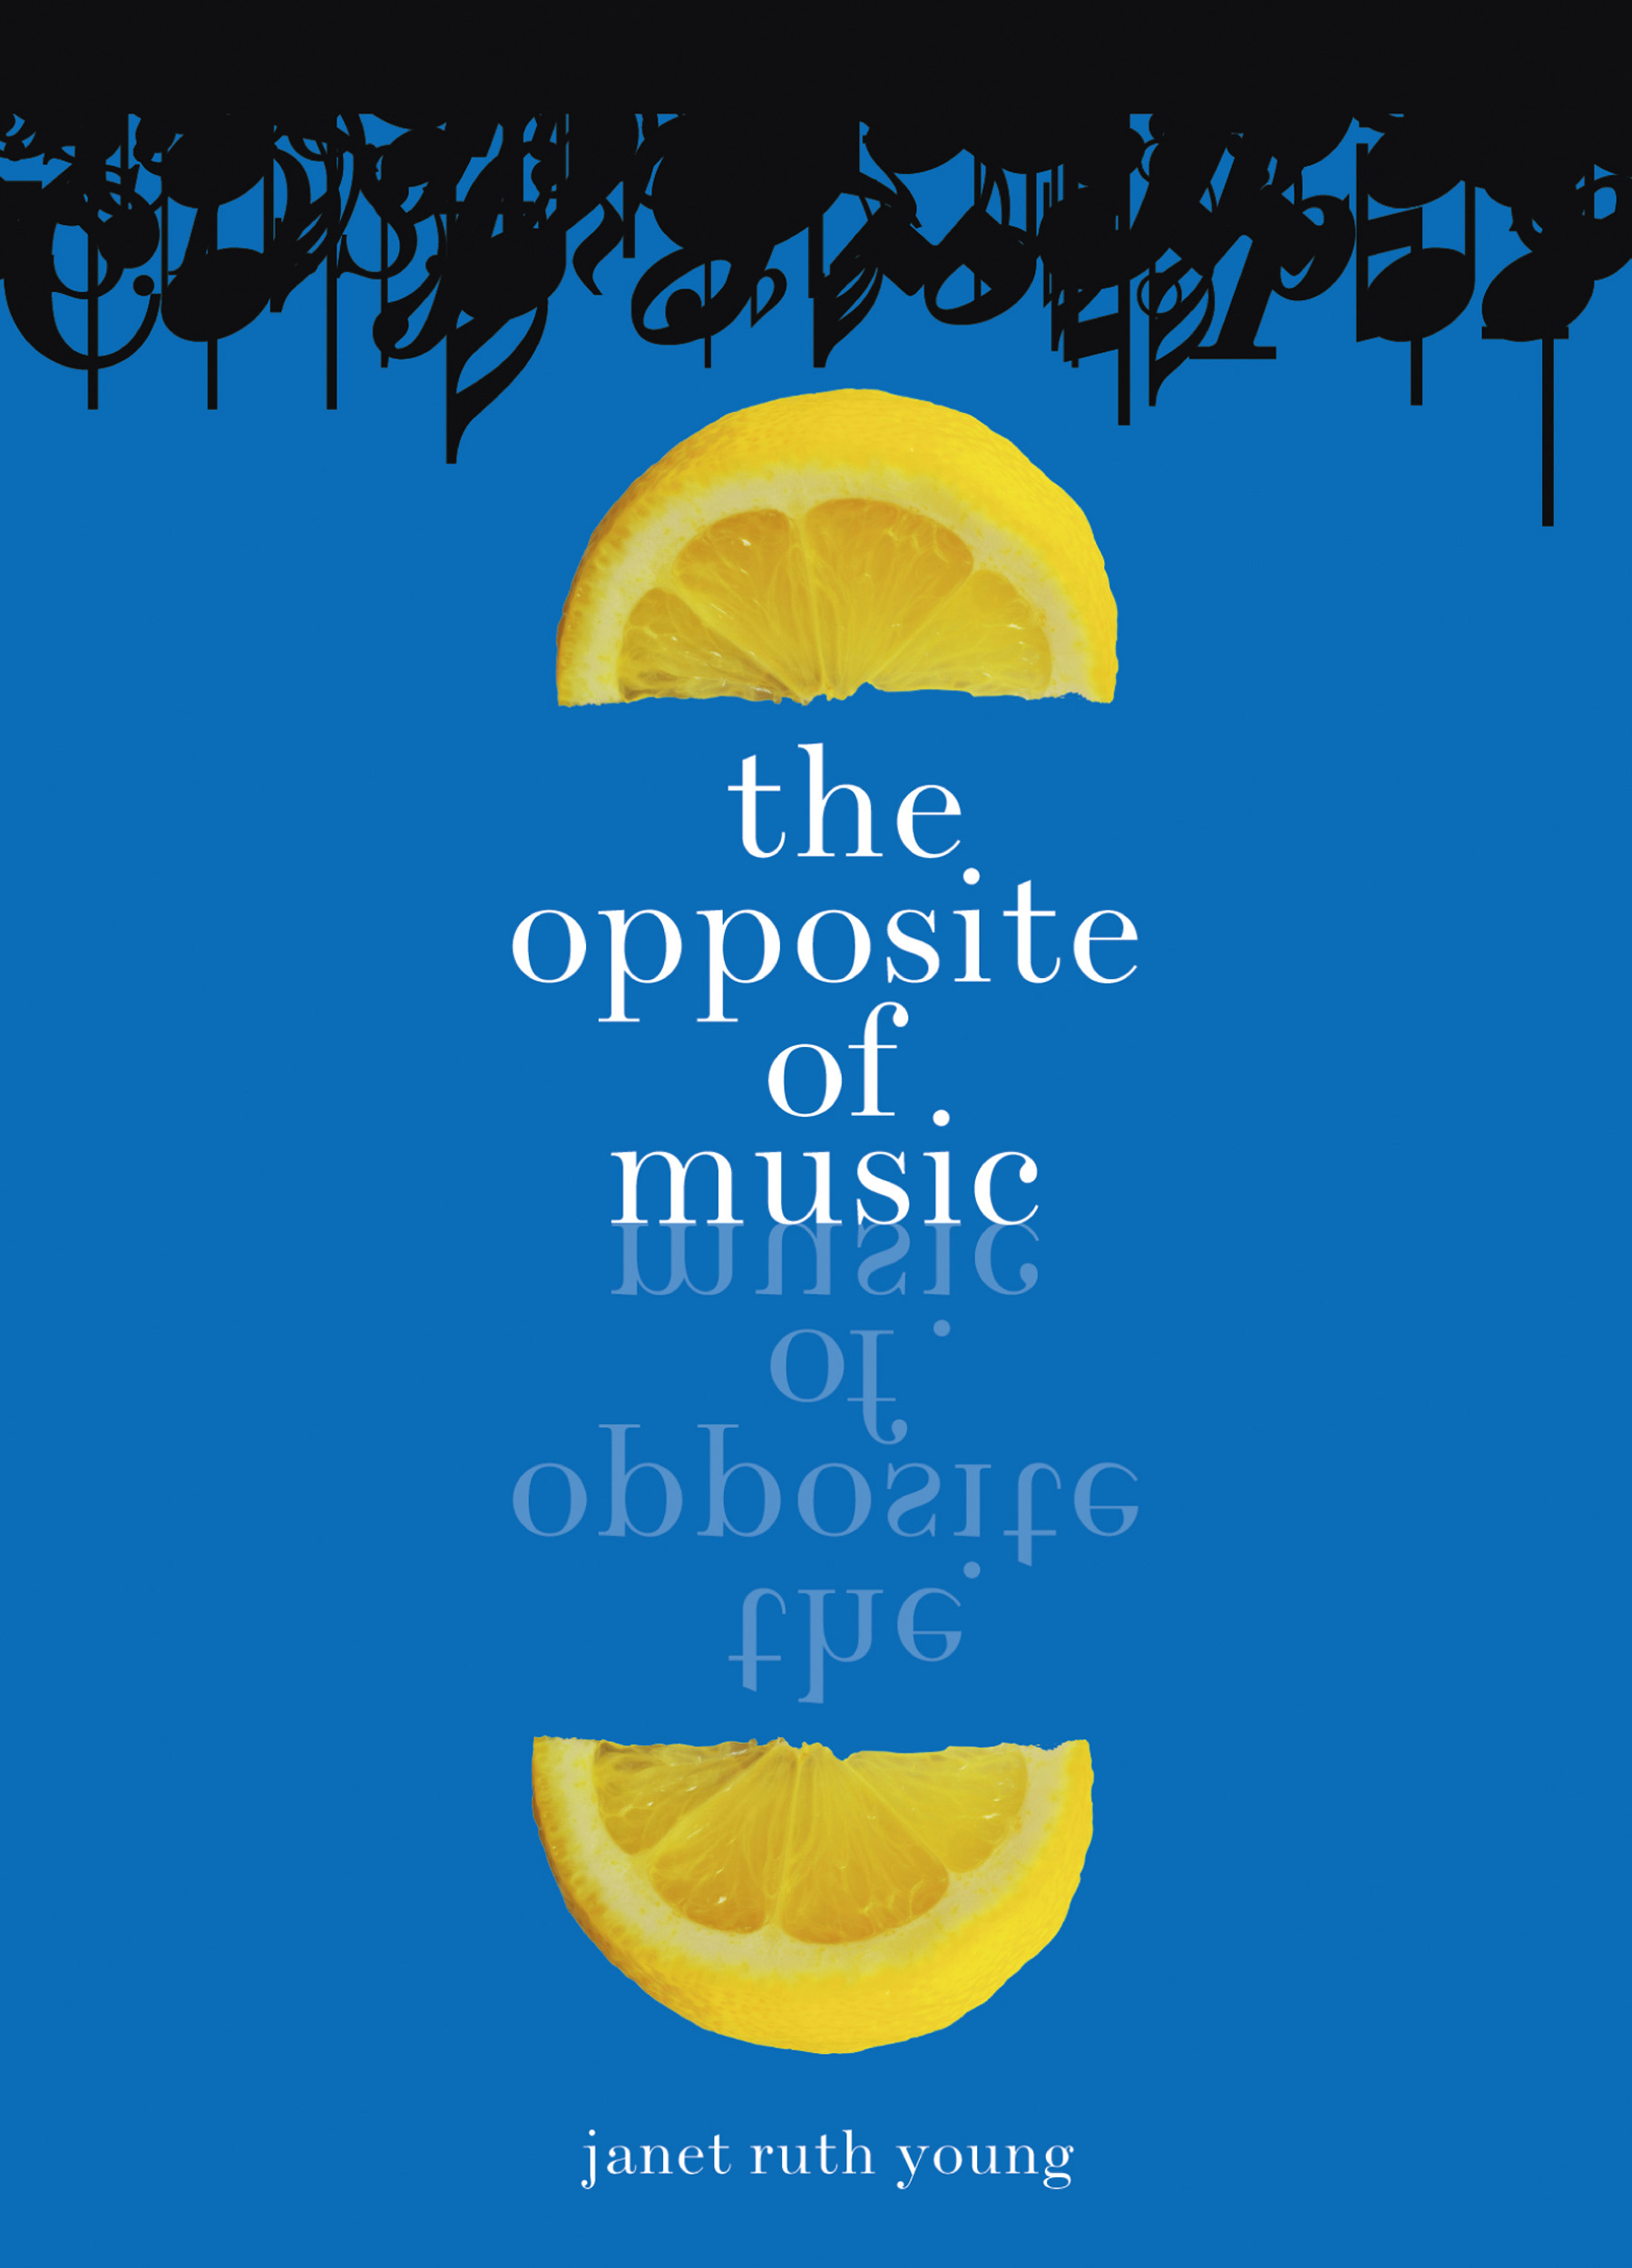 Opposite of music ebook by janet ruth young official publisher book cover image jpg opposite of music ebook 9781471103636 fandeluxe PDF